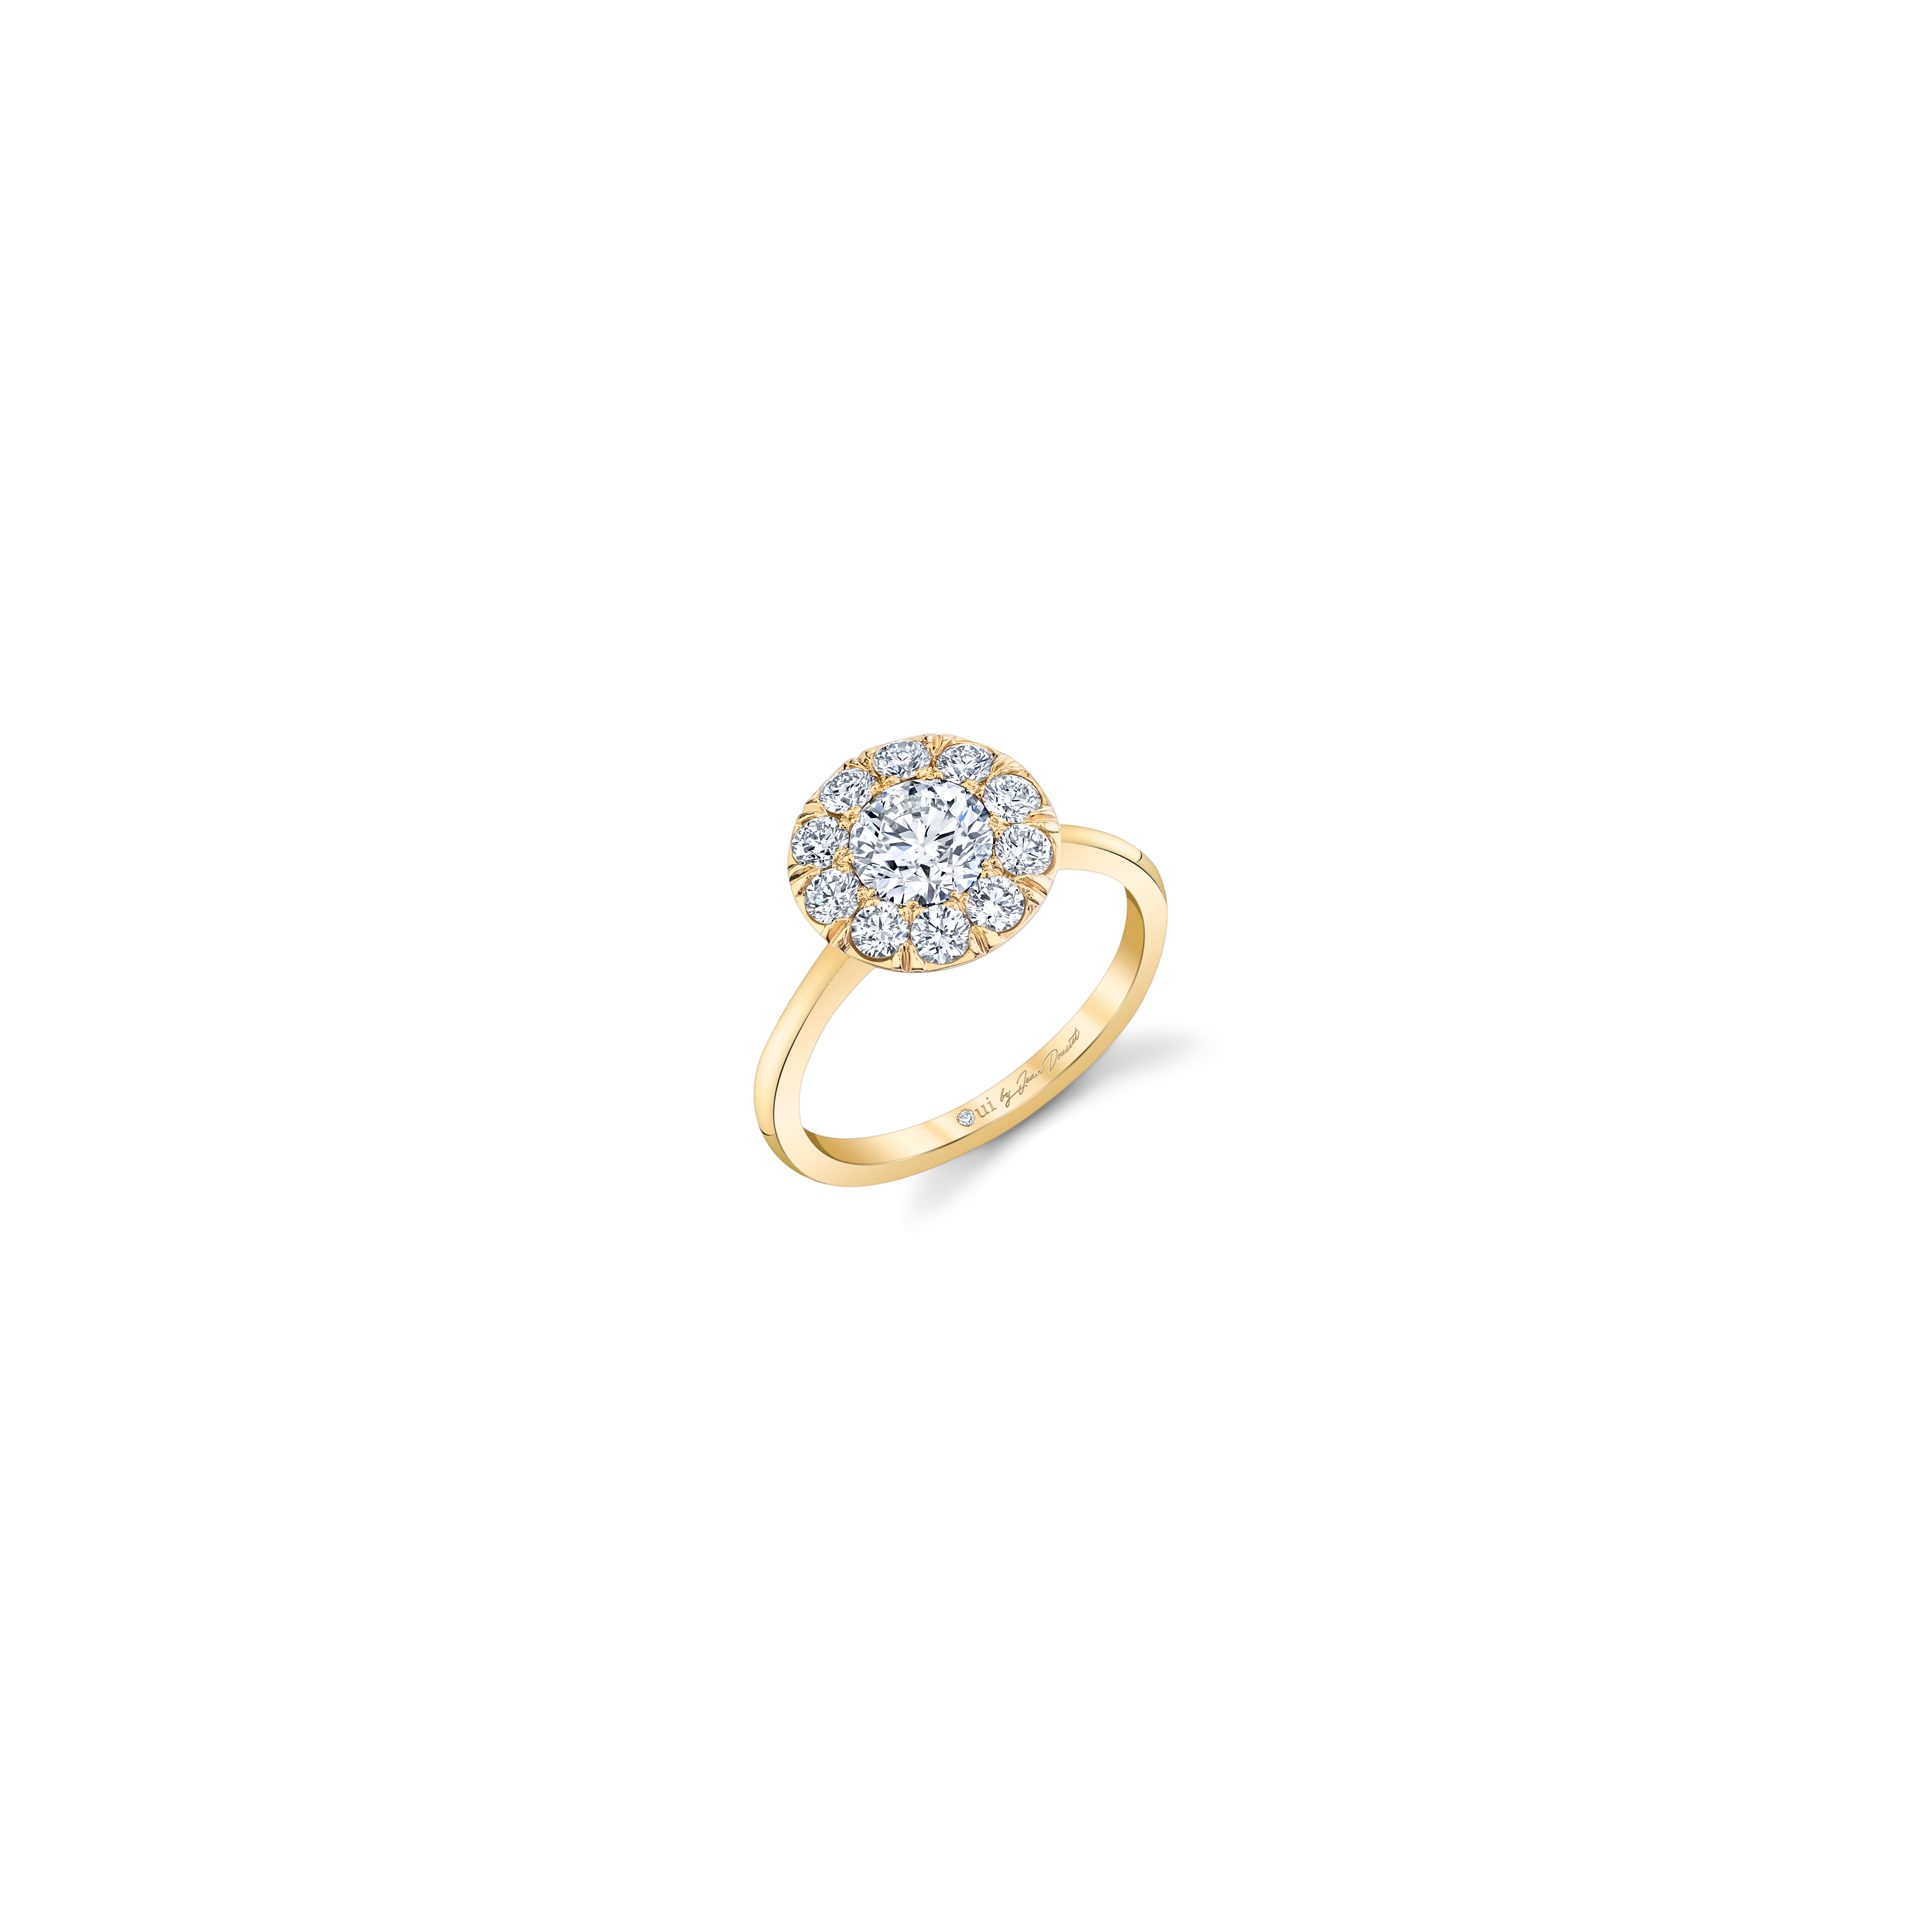 Colette Floating Round Brilliant Seamless Solitaire® Engagement Ring with a sold band in 18k Yellow Gold Front View by Oui by Jean Dousset